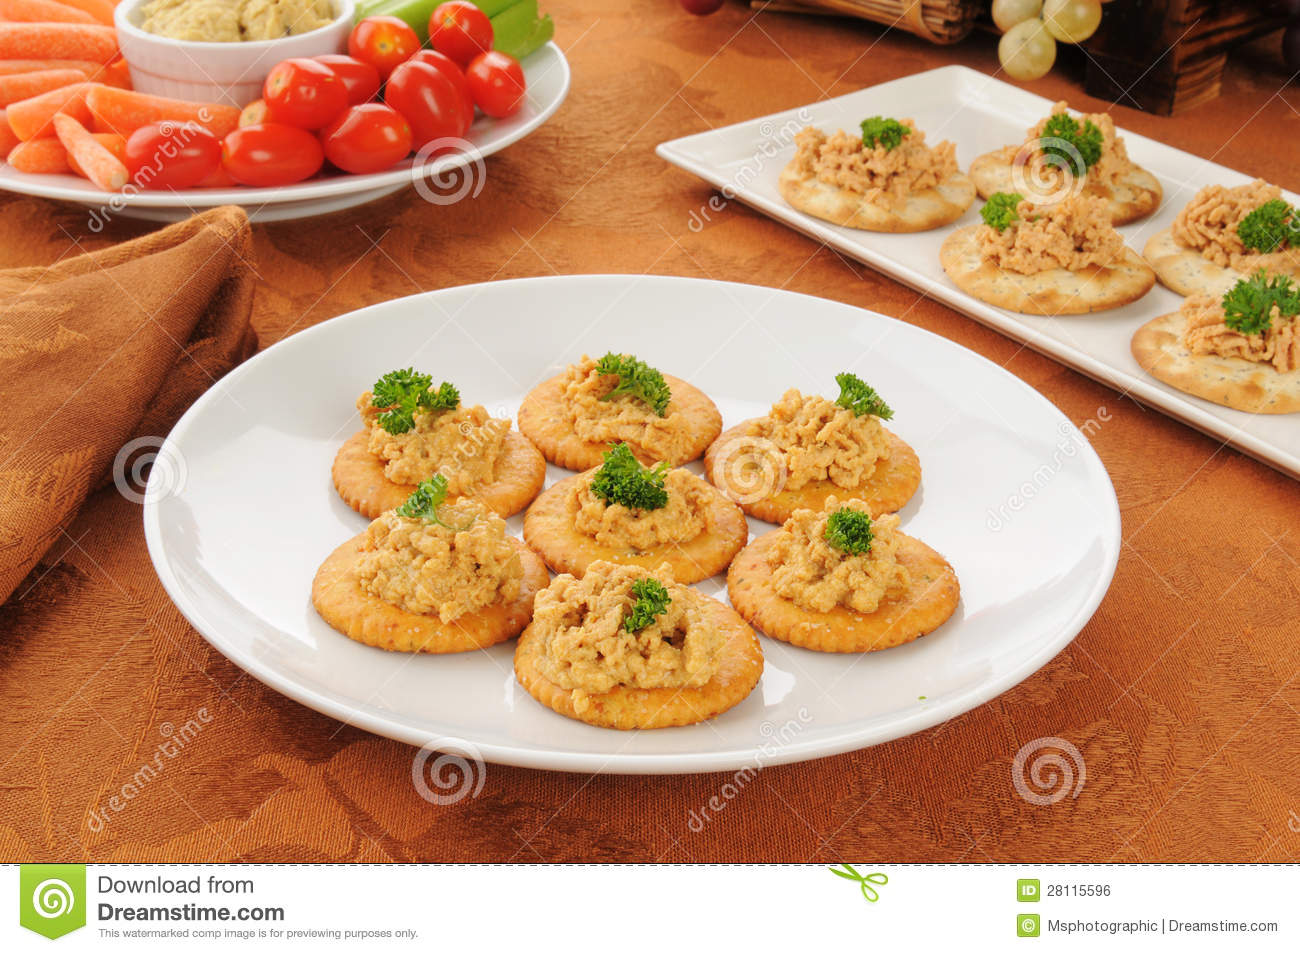 Lobster pate canapes royalty free stock image image for Canape de pate con cebolla caramelizada